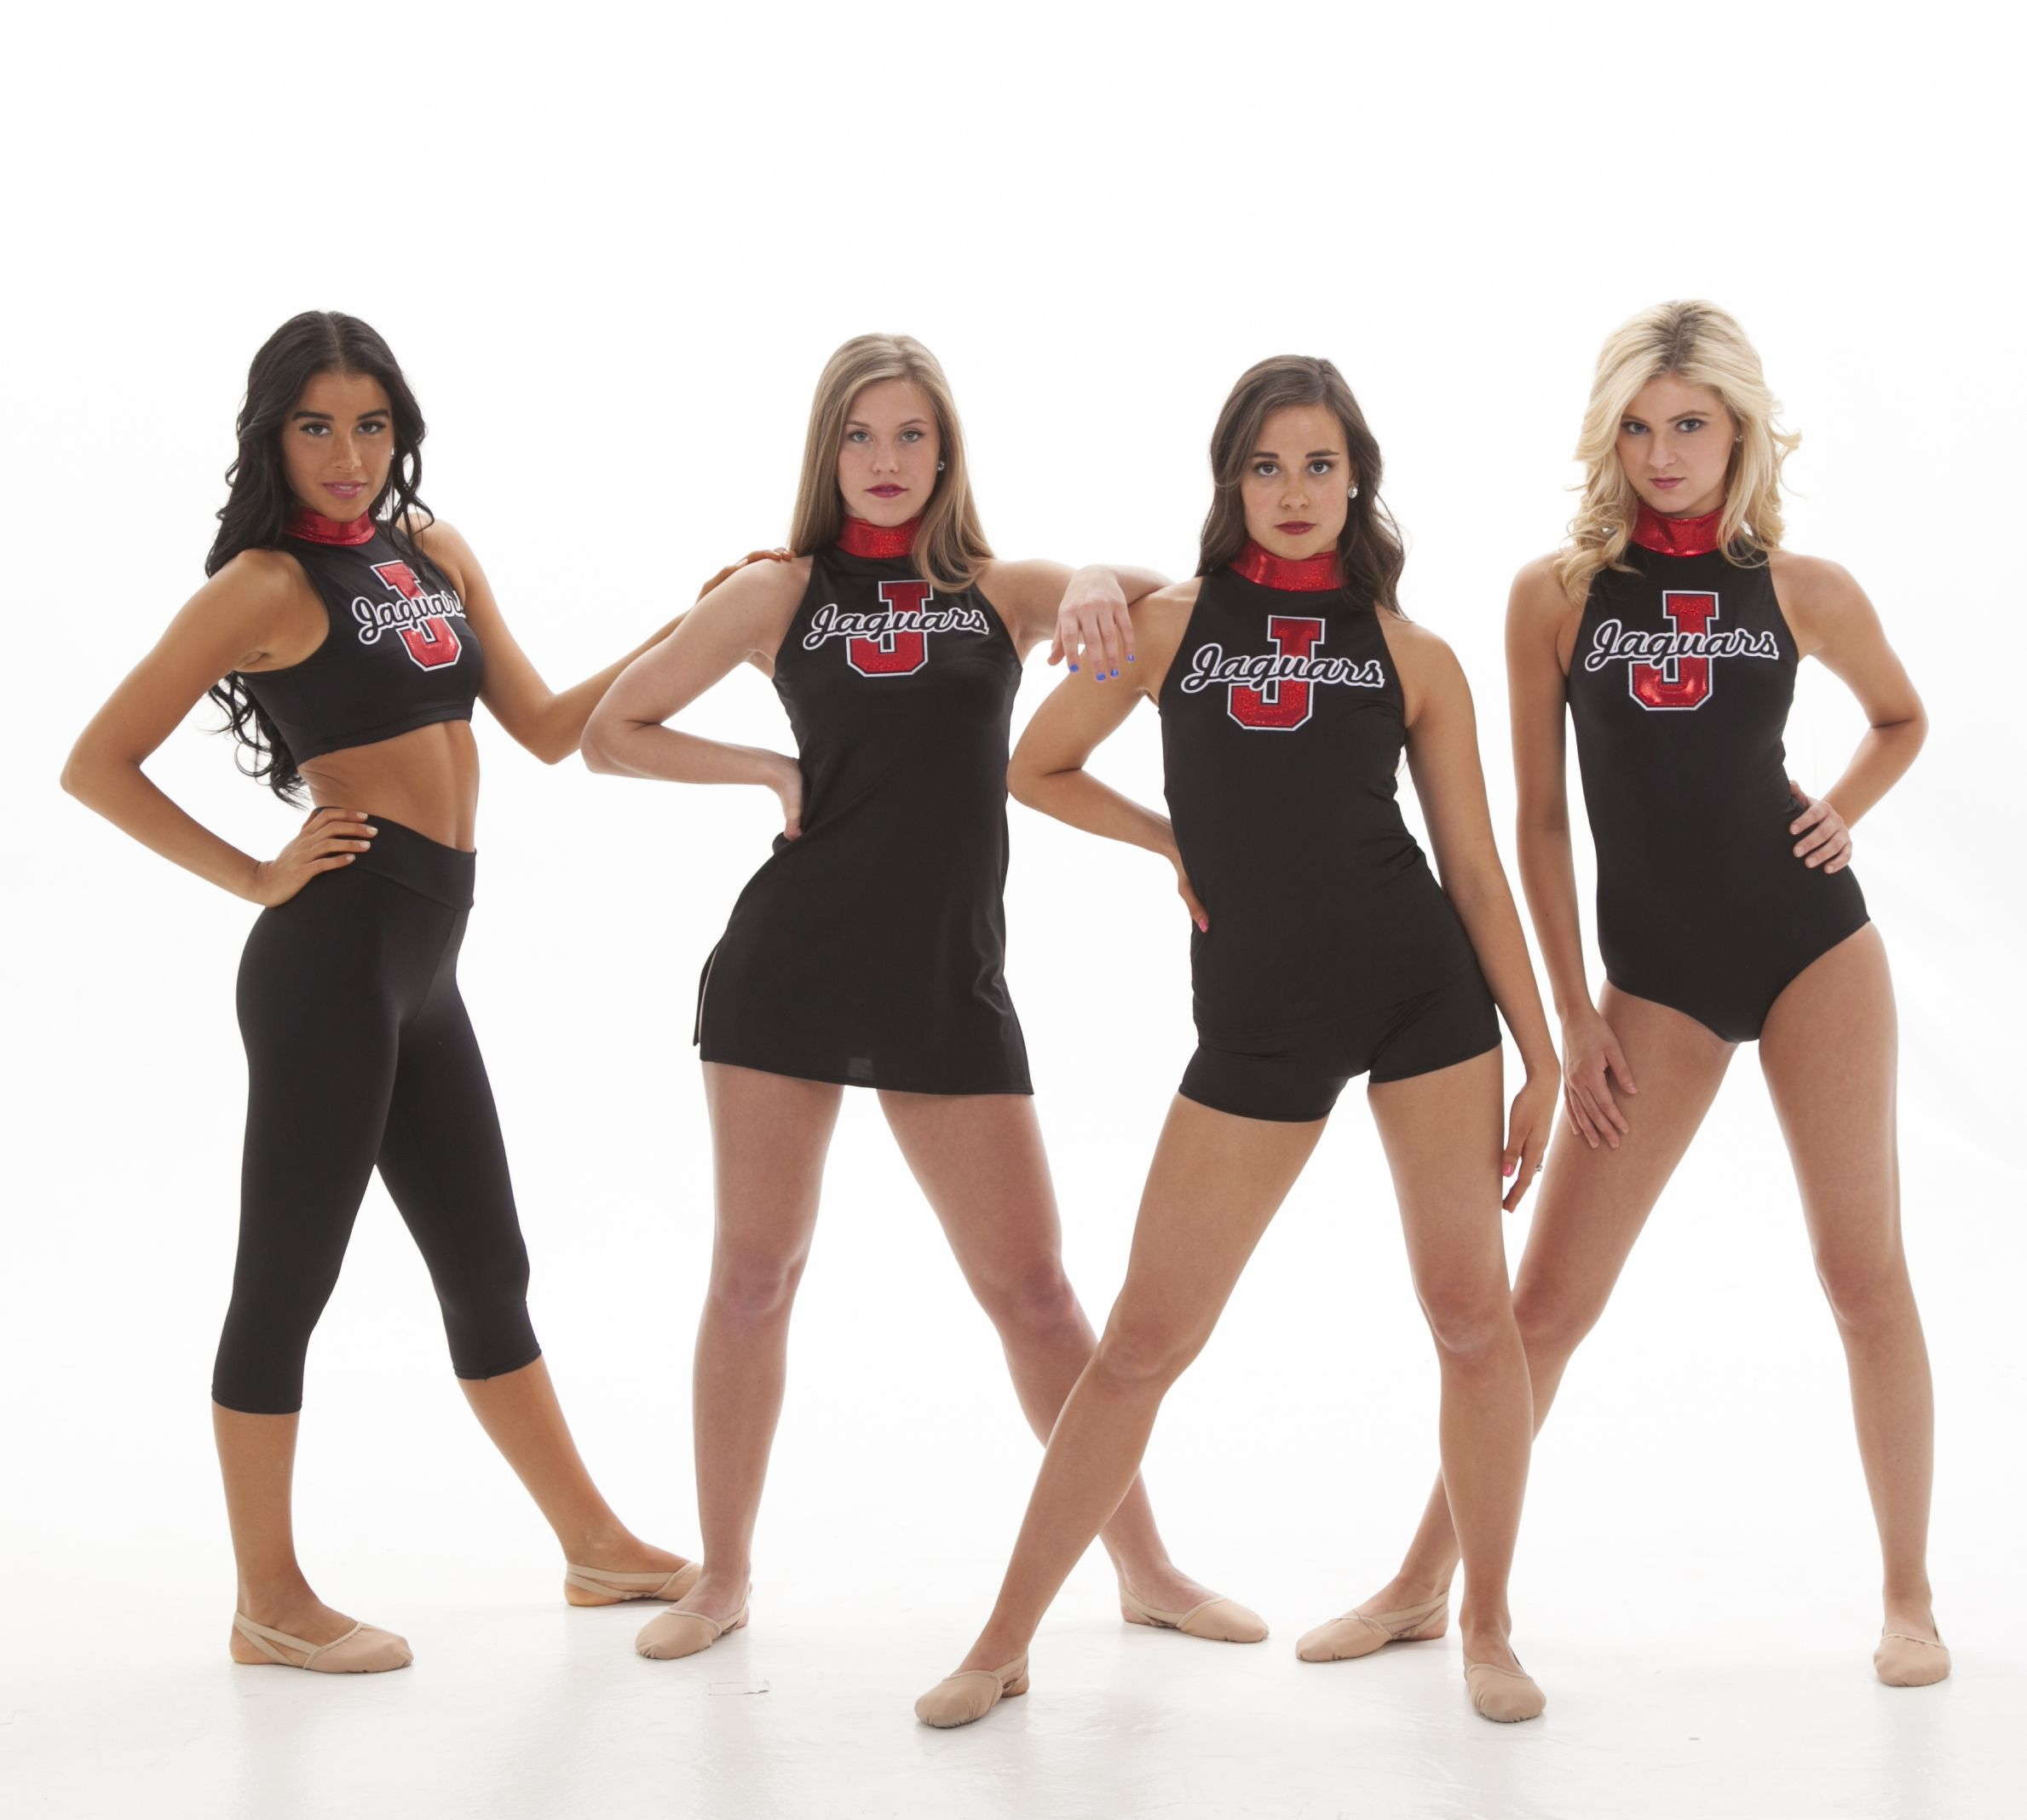 8c34b8460 Black Uniforms with red logo- dress, biketard, leotard and crop top- edgy  but classy. Perfect gameday uniforms for a highschool or college dance  team, ...